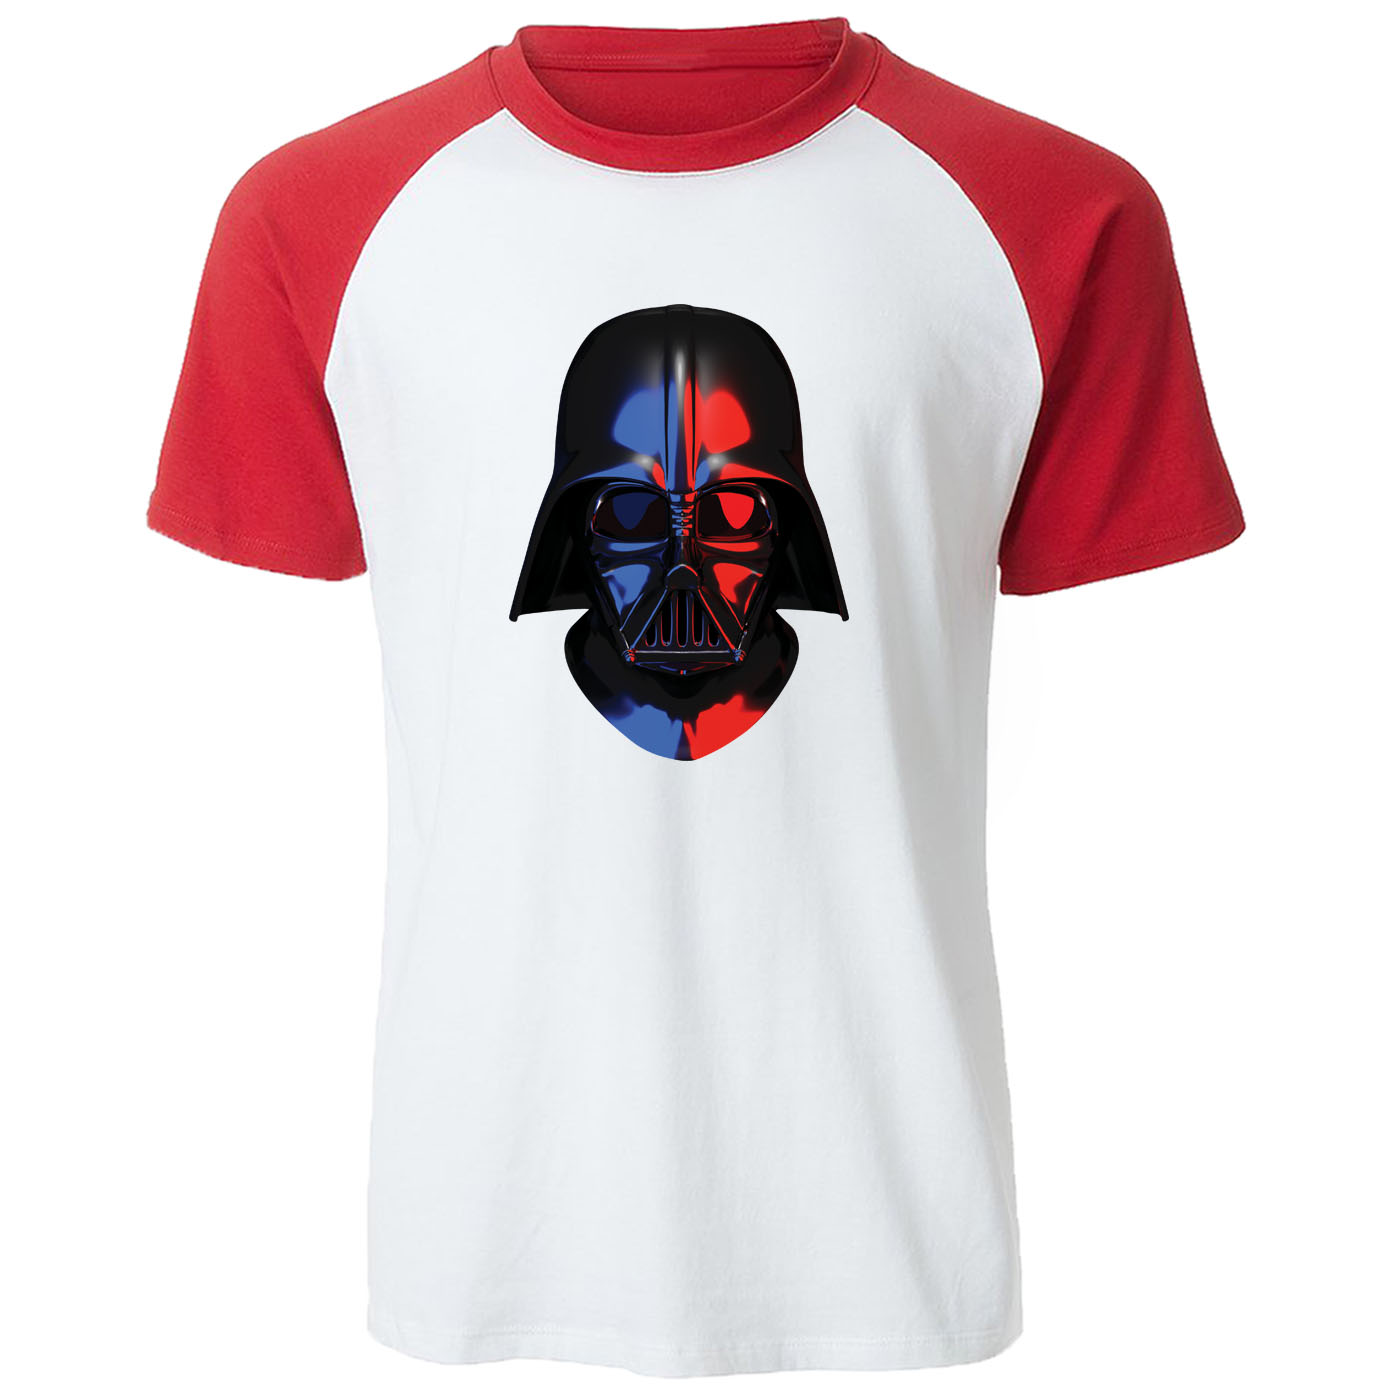 star wars T-shirt 2019 Summer Cotton t shirts men Funny novel Men's tops tee Harajuku Raglan Short Sleeve Darth Vader Streetwear image